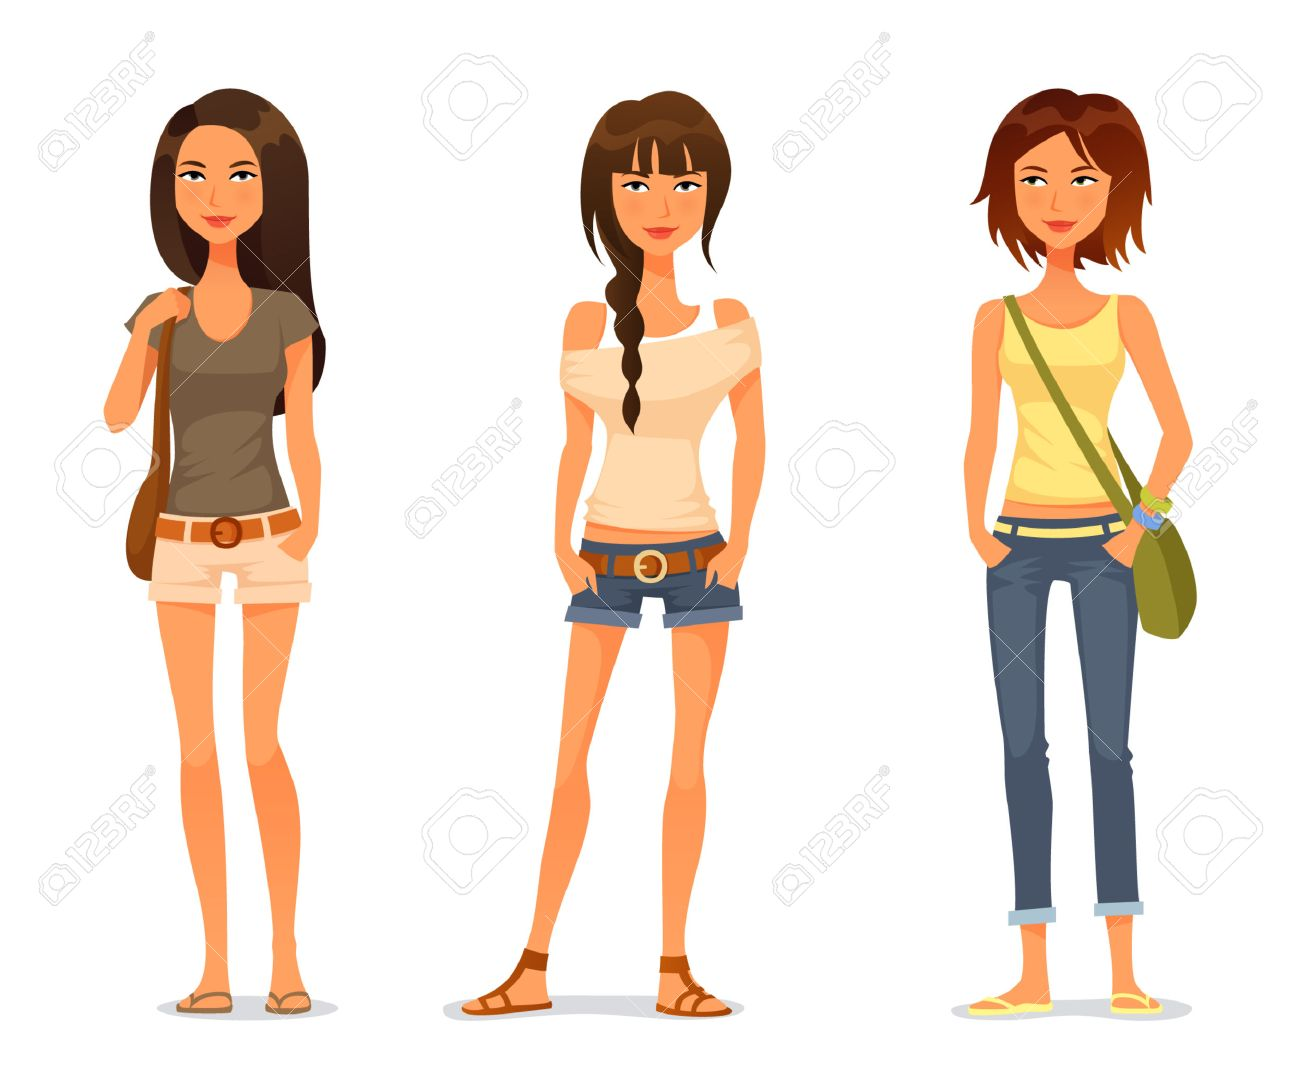 Teenage girl clipart 6 » Clipart Station.